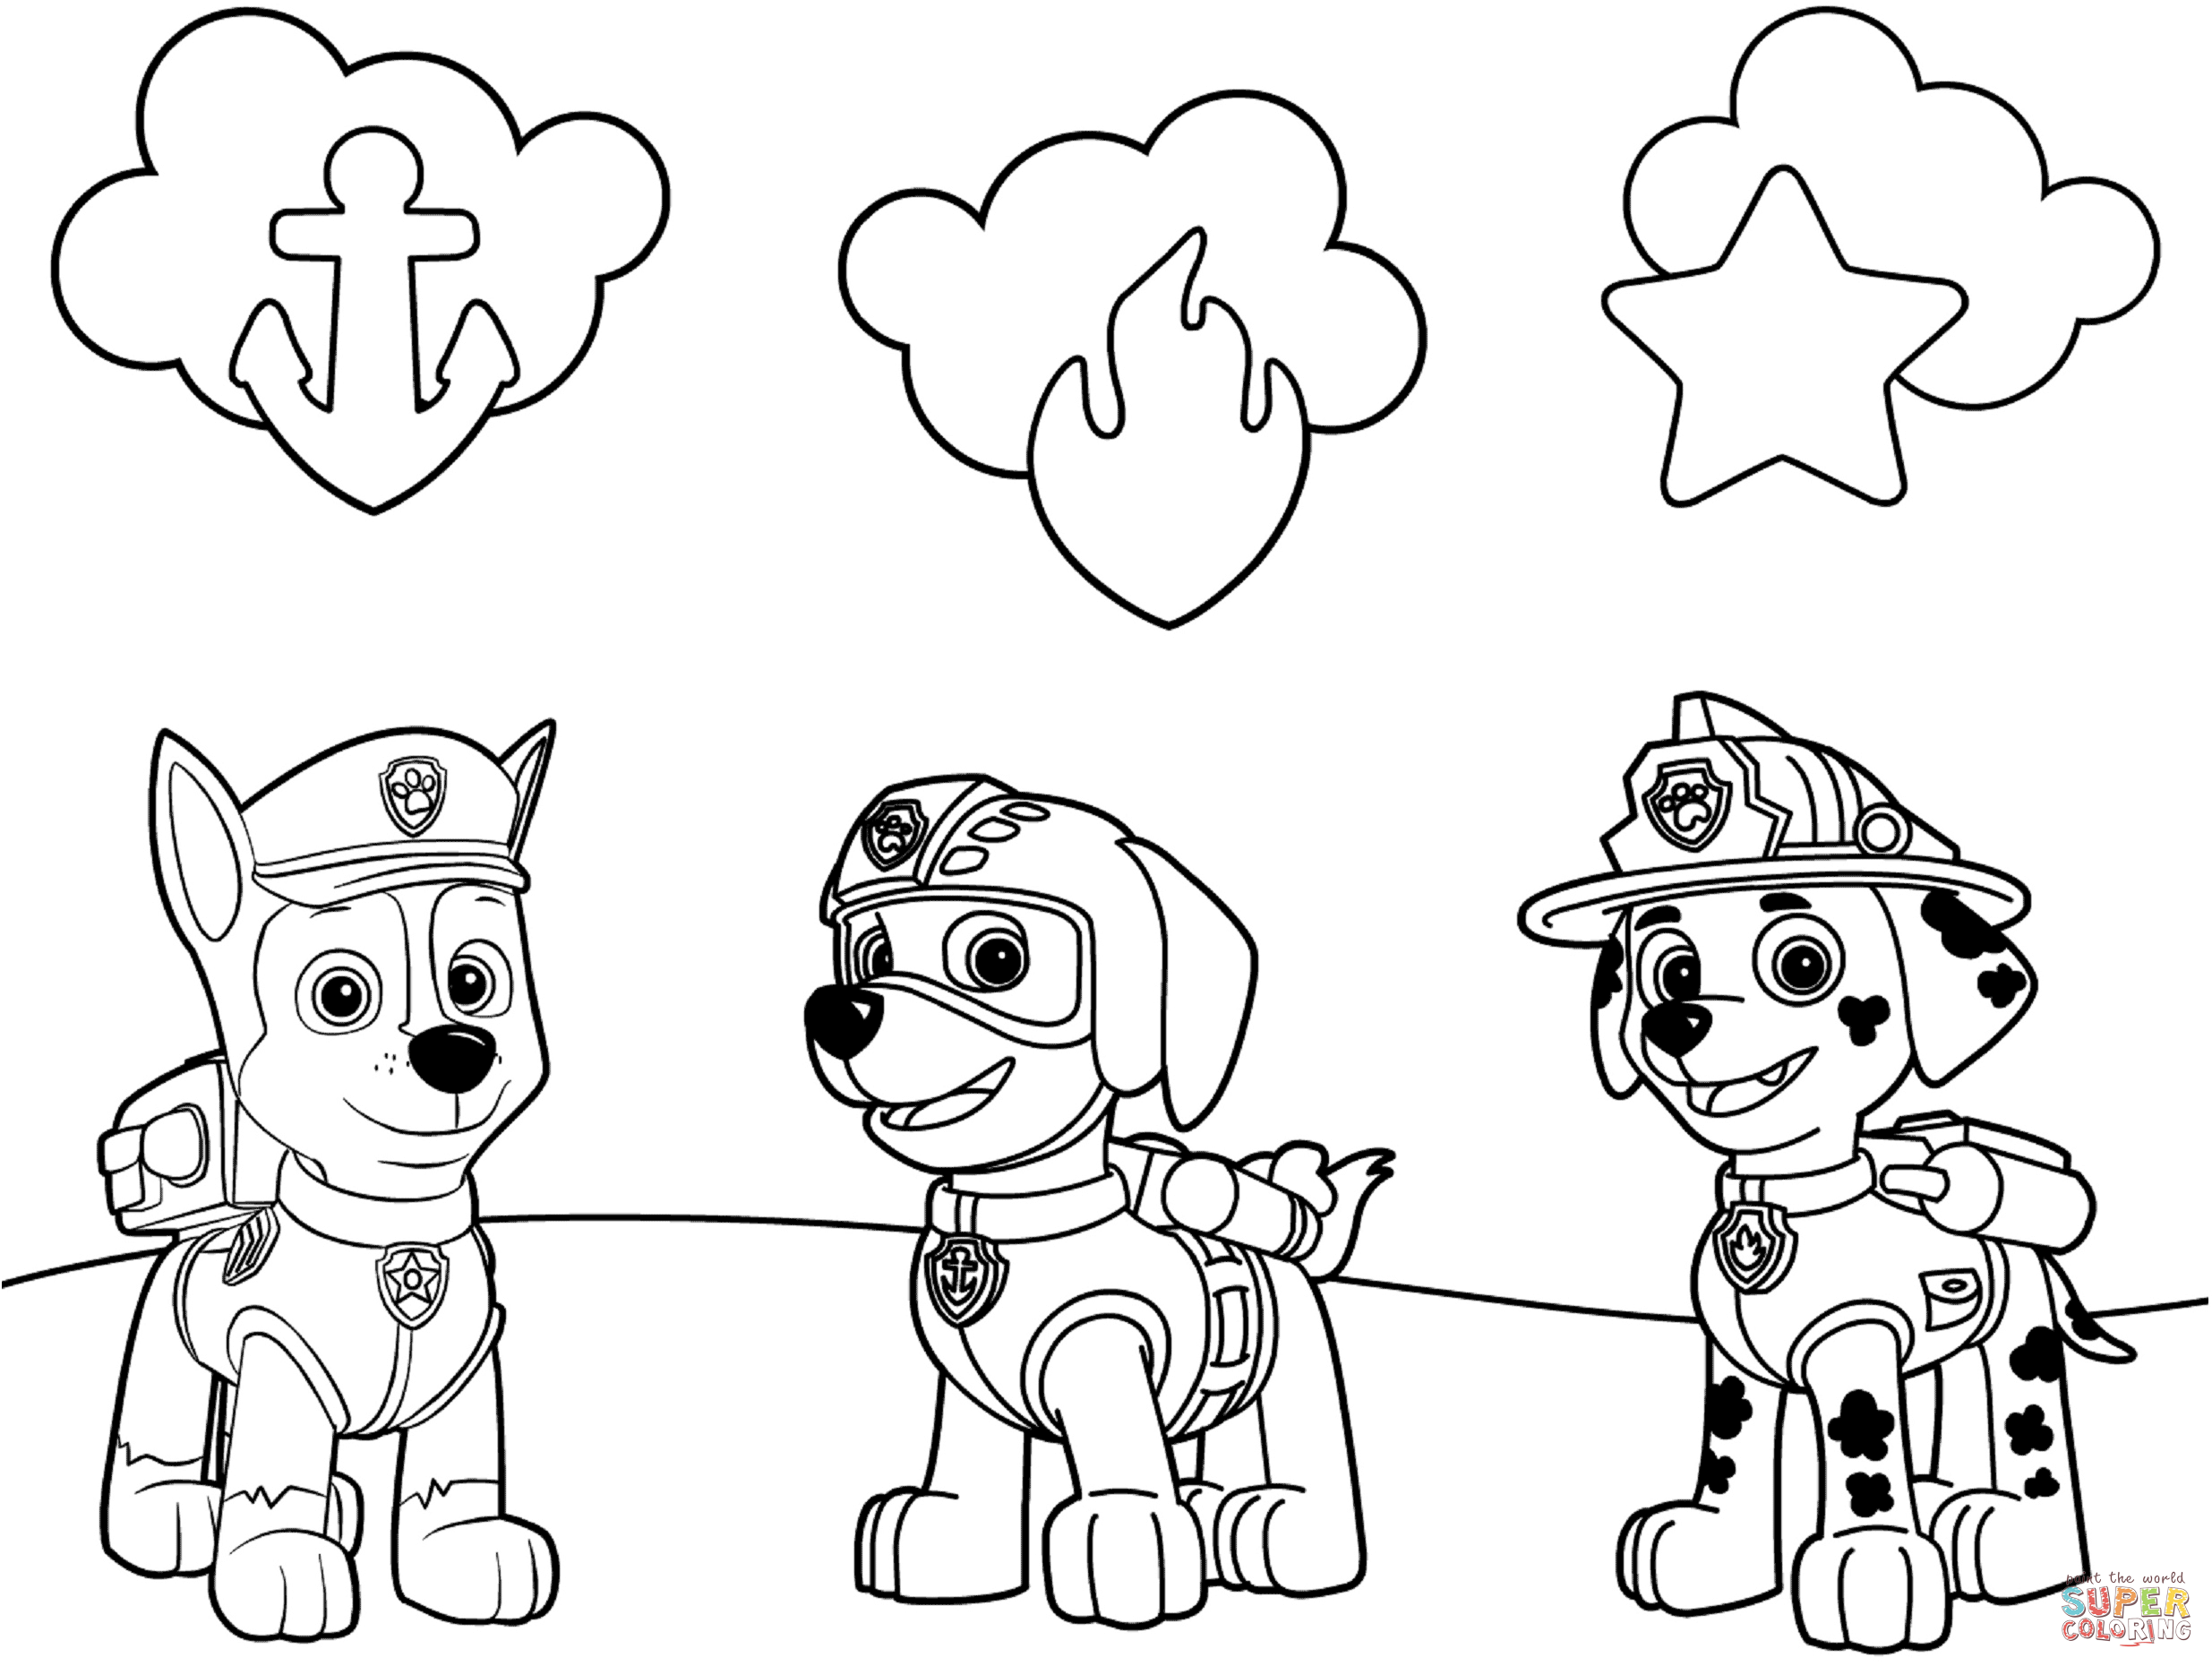 print paw patrol coloring pages paw patrol coloring pages print and colorcom print pages coloring patrol paw